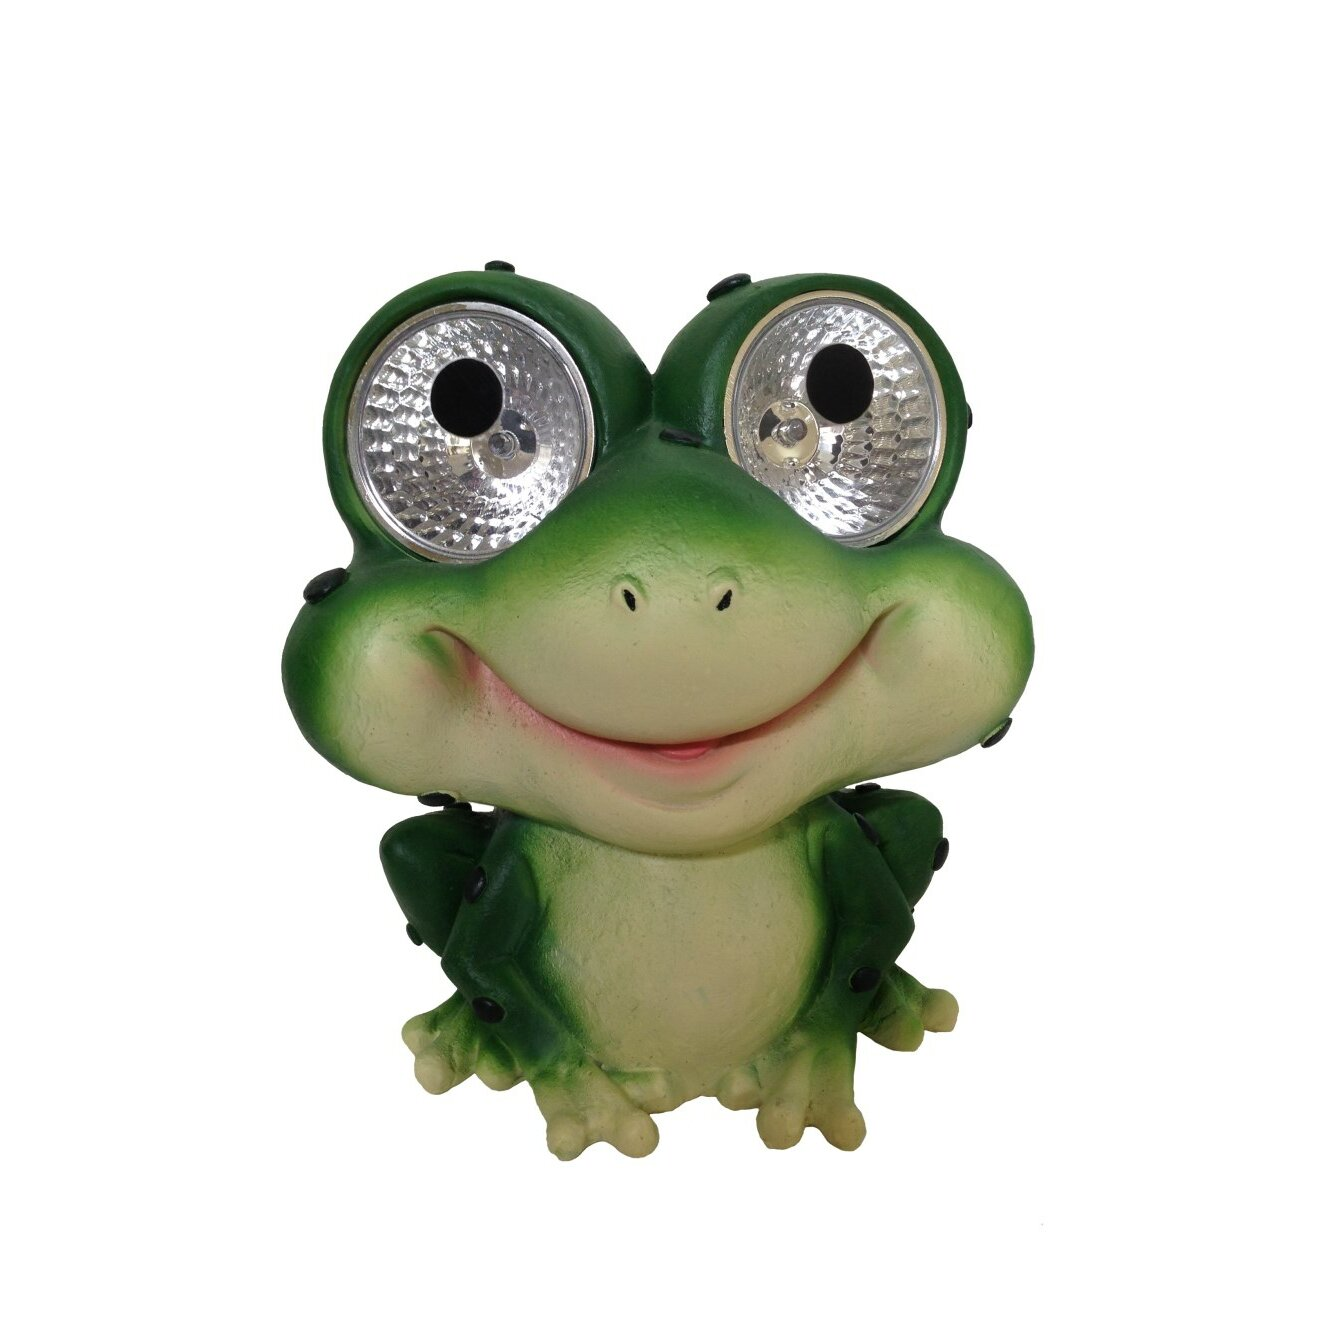 Smart Solar Garden Pals Solar Frog Light Statue Reviews Wayfair